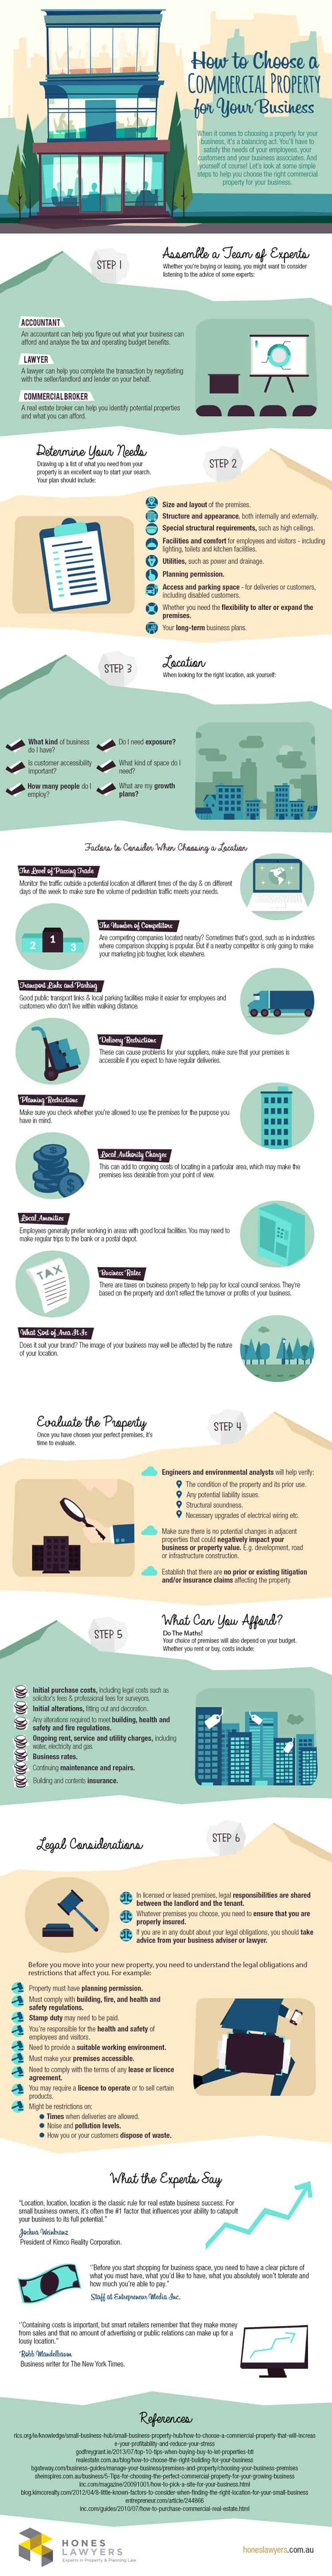 How to Choose a Commercial Property for Your Business